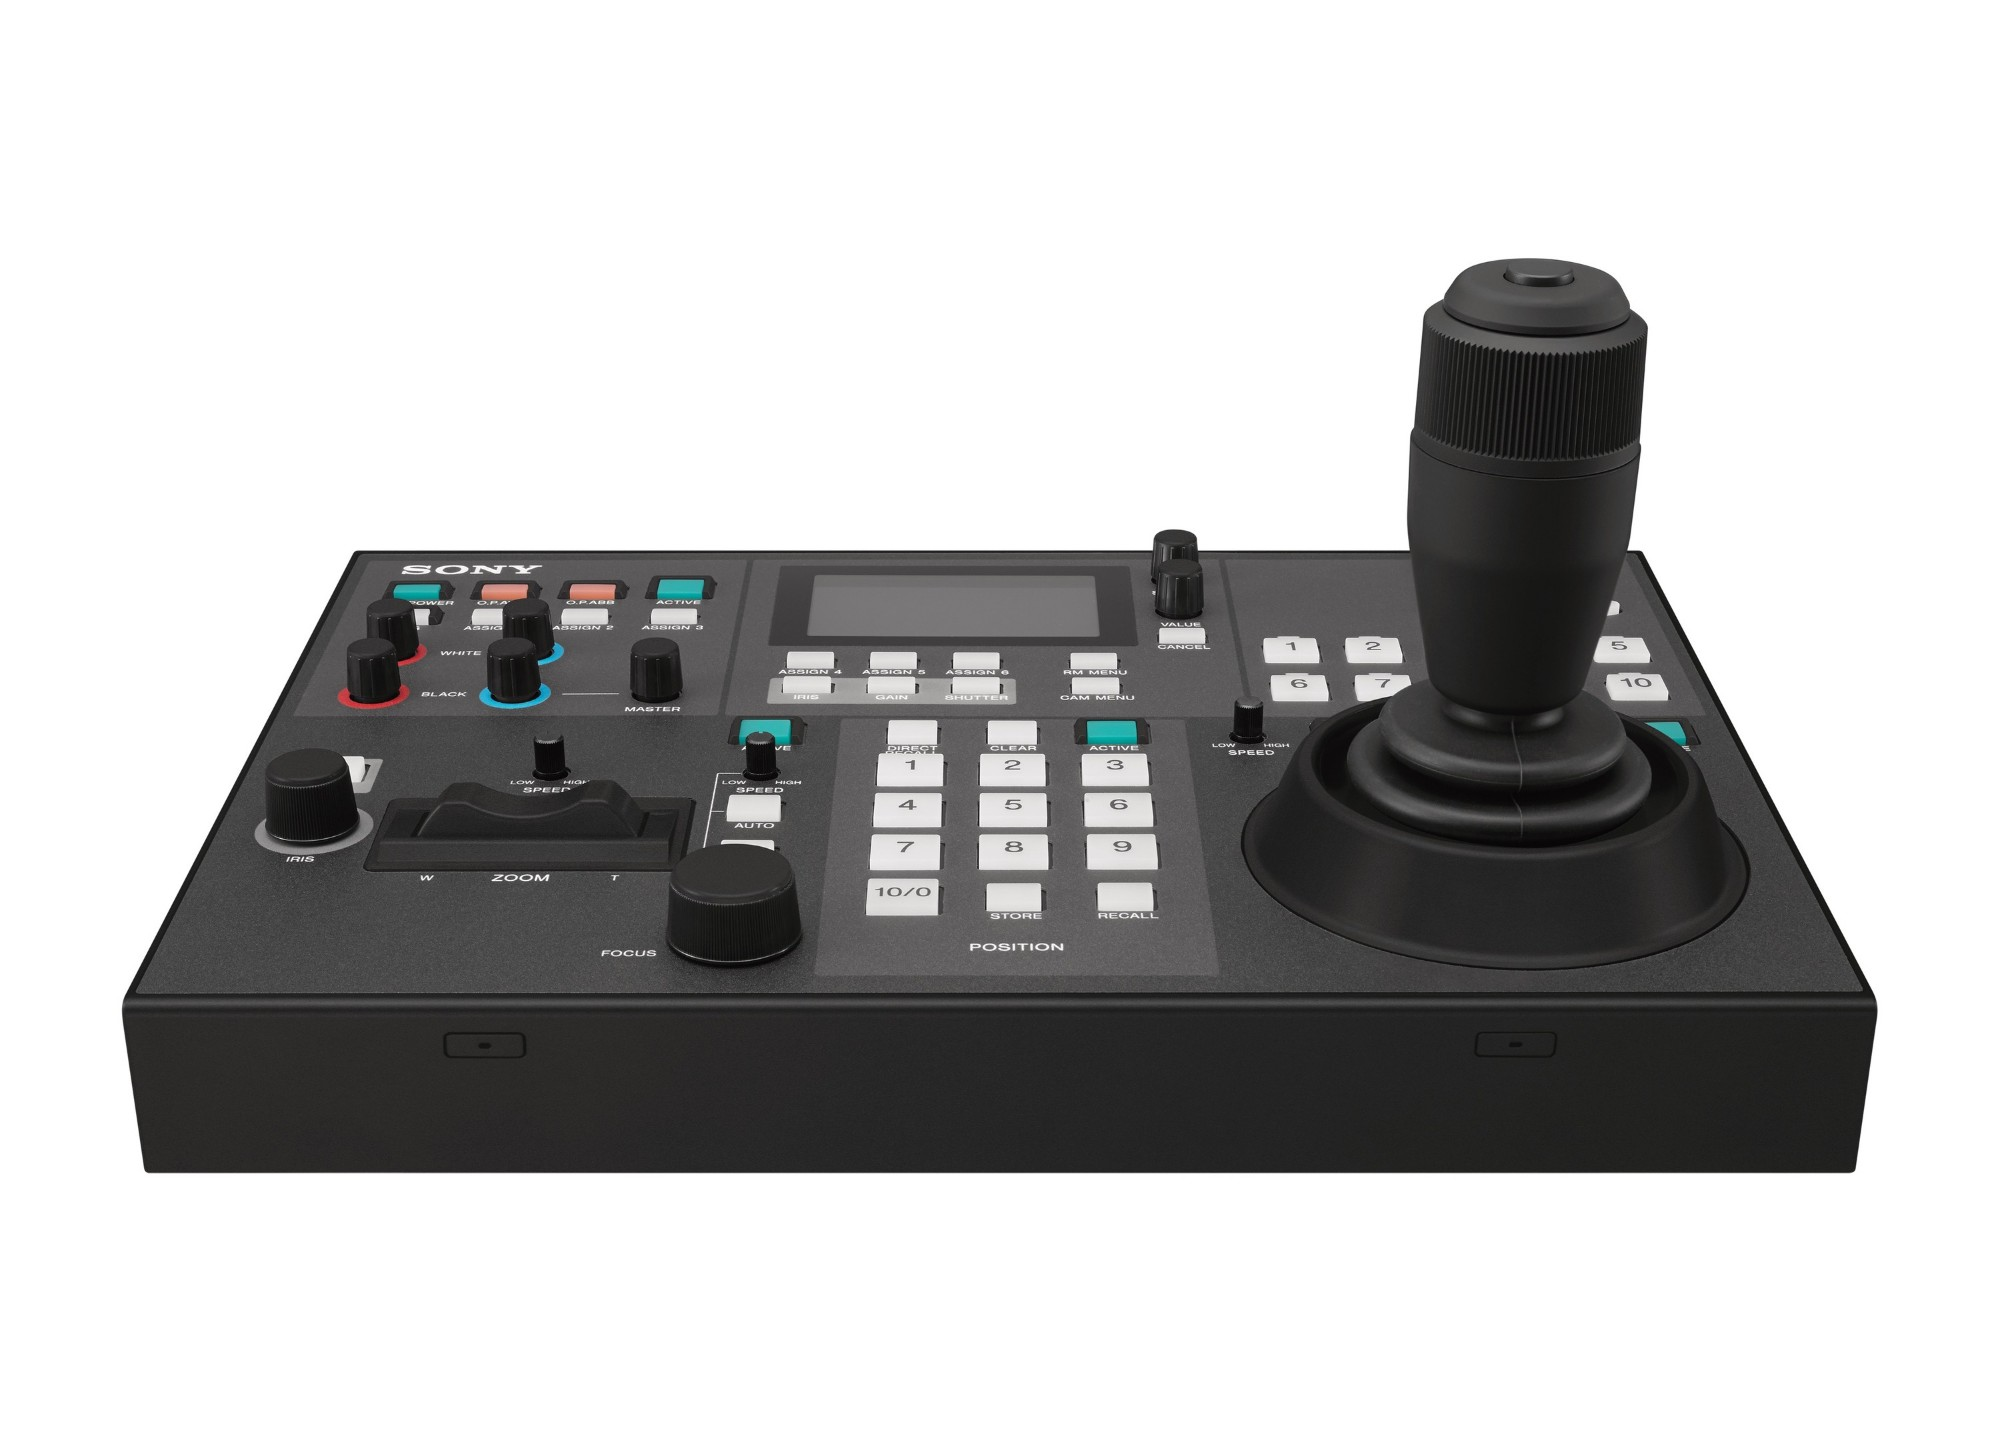 Sony RM-IP500 remote control Wired